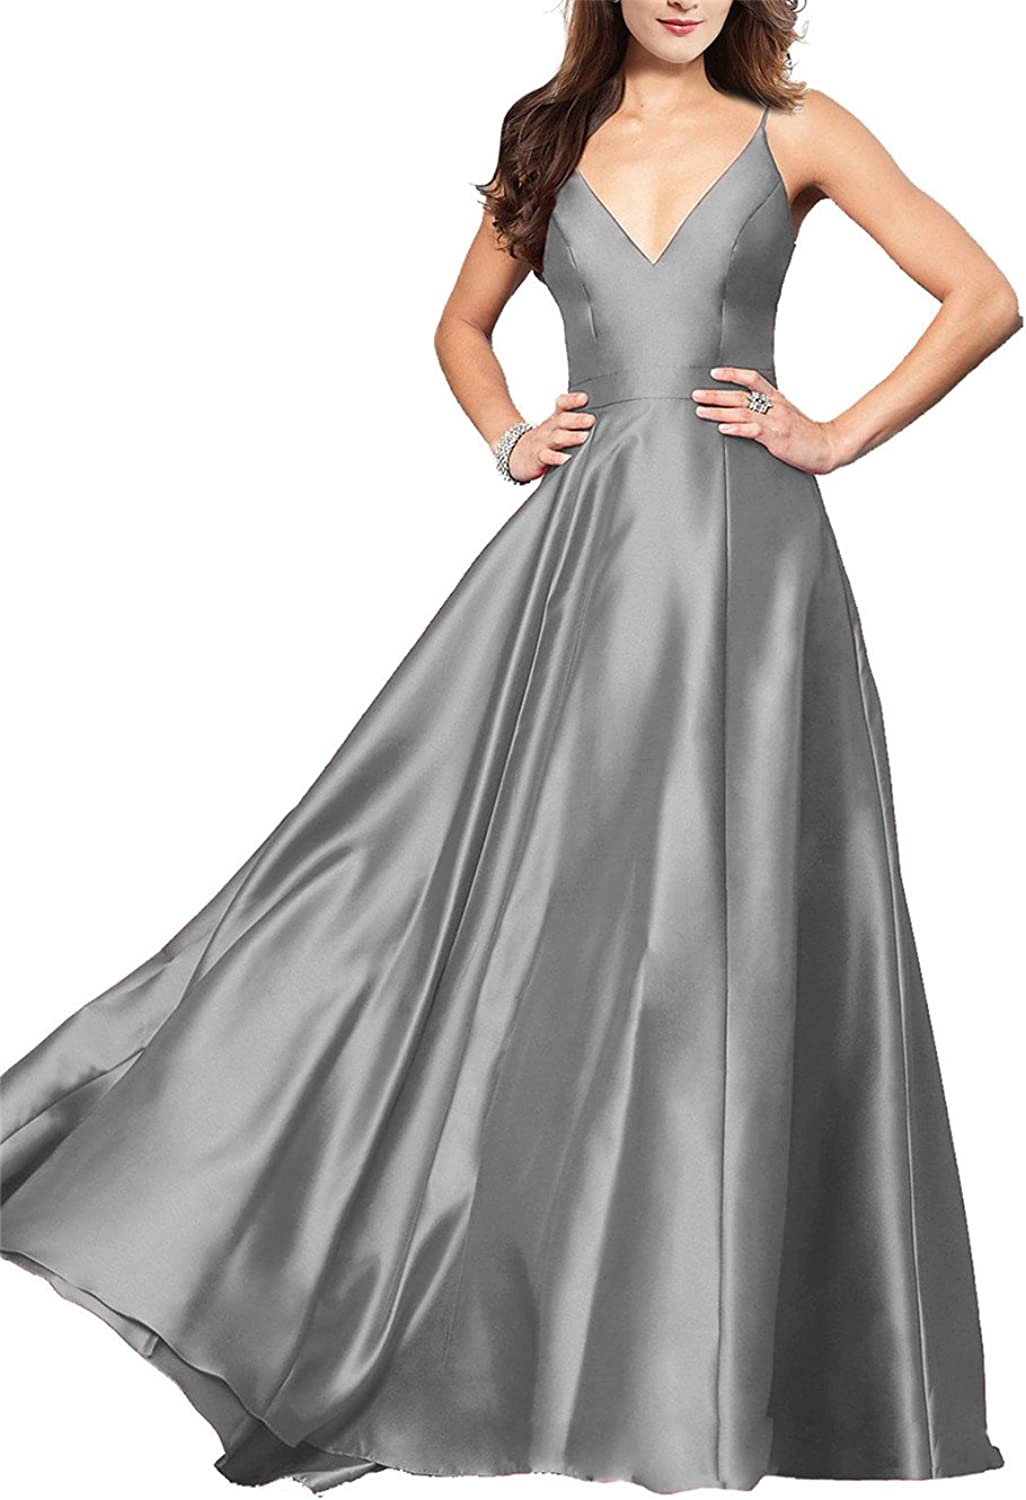 Lily Wedding Womens VNeck Satin Prom Dresses 2019 Long Aline Sleeveless Formal Evening Ball Gowns GD48 Plus Size 24 Grey